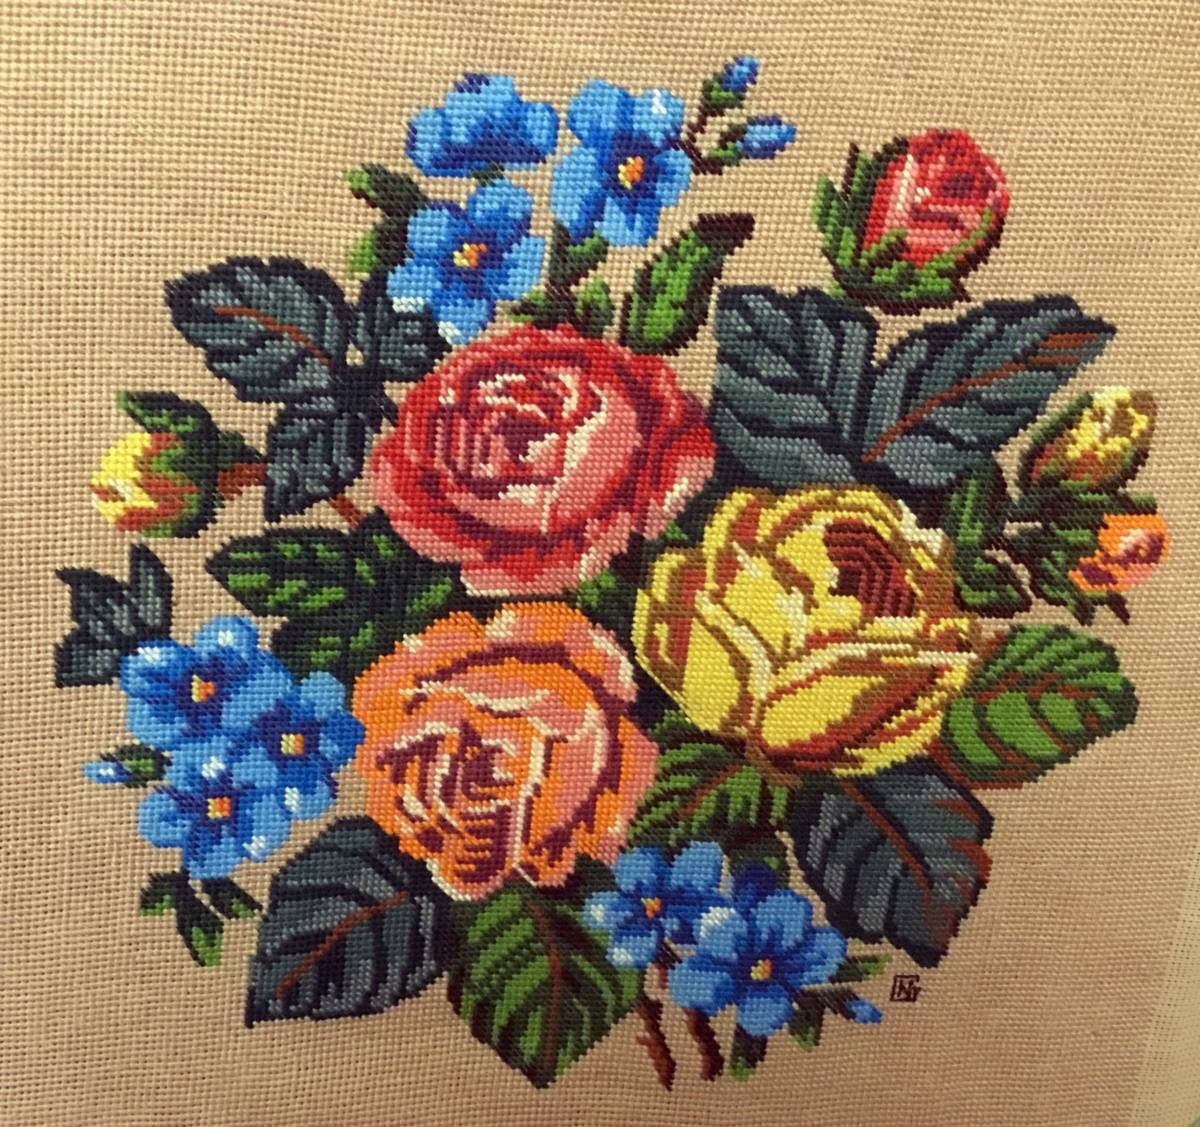 flowers needlepoint artwork by norma